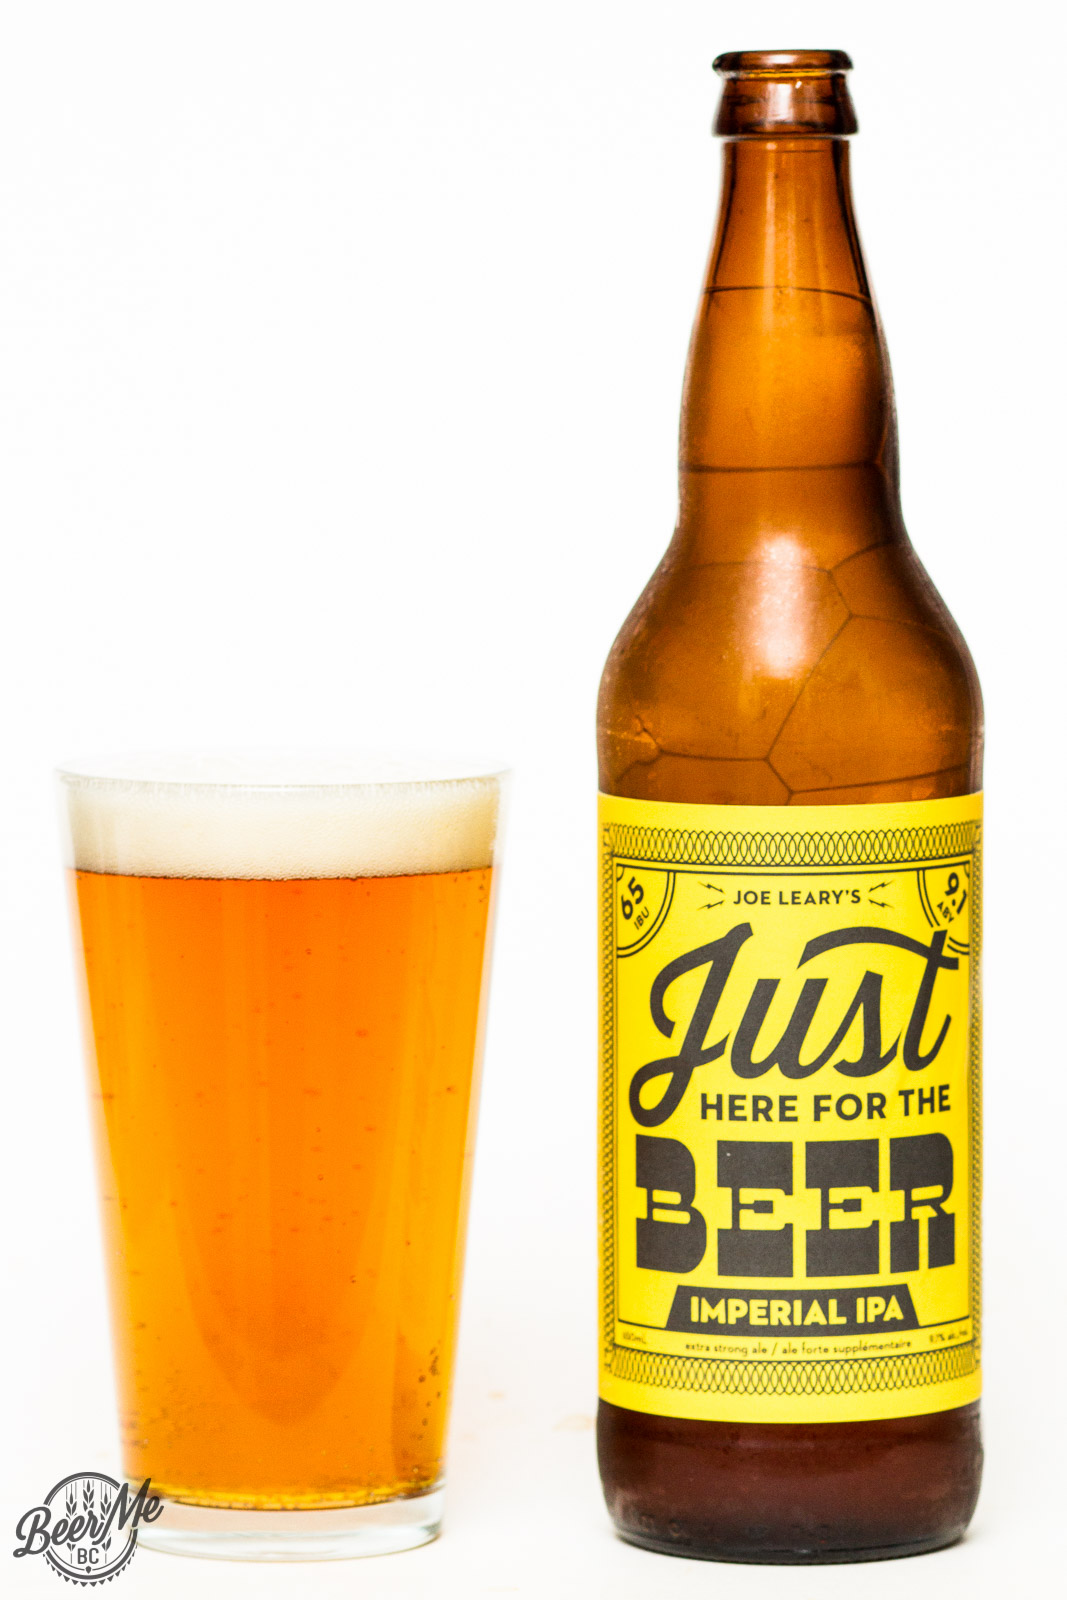 Lighthouse Brewing - Just Here For The Beer Imperial IPA Review